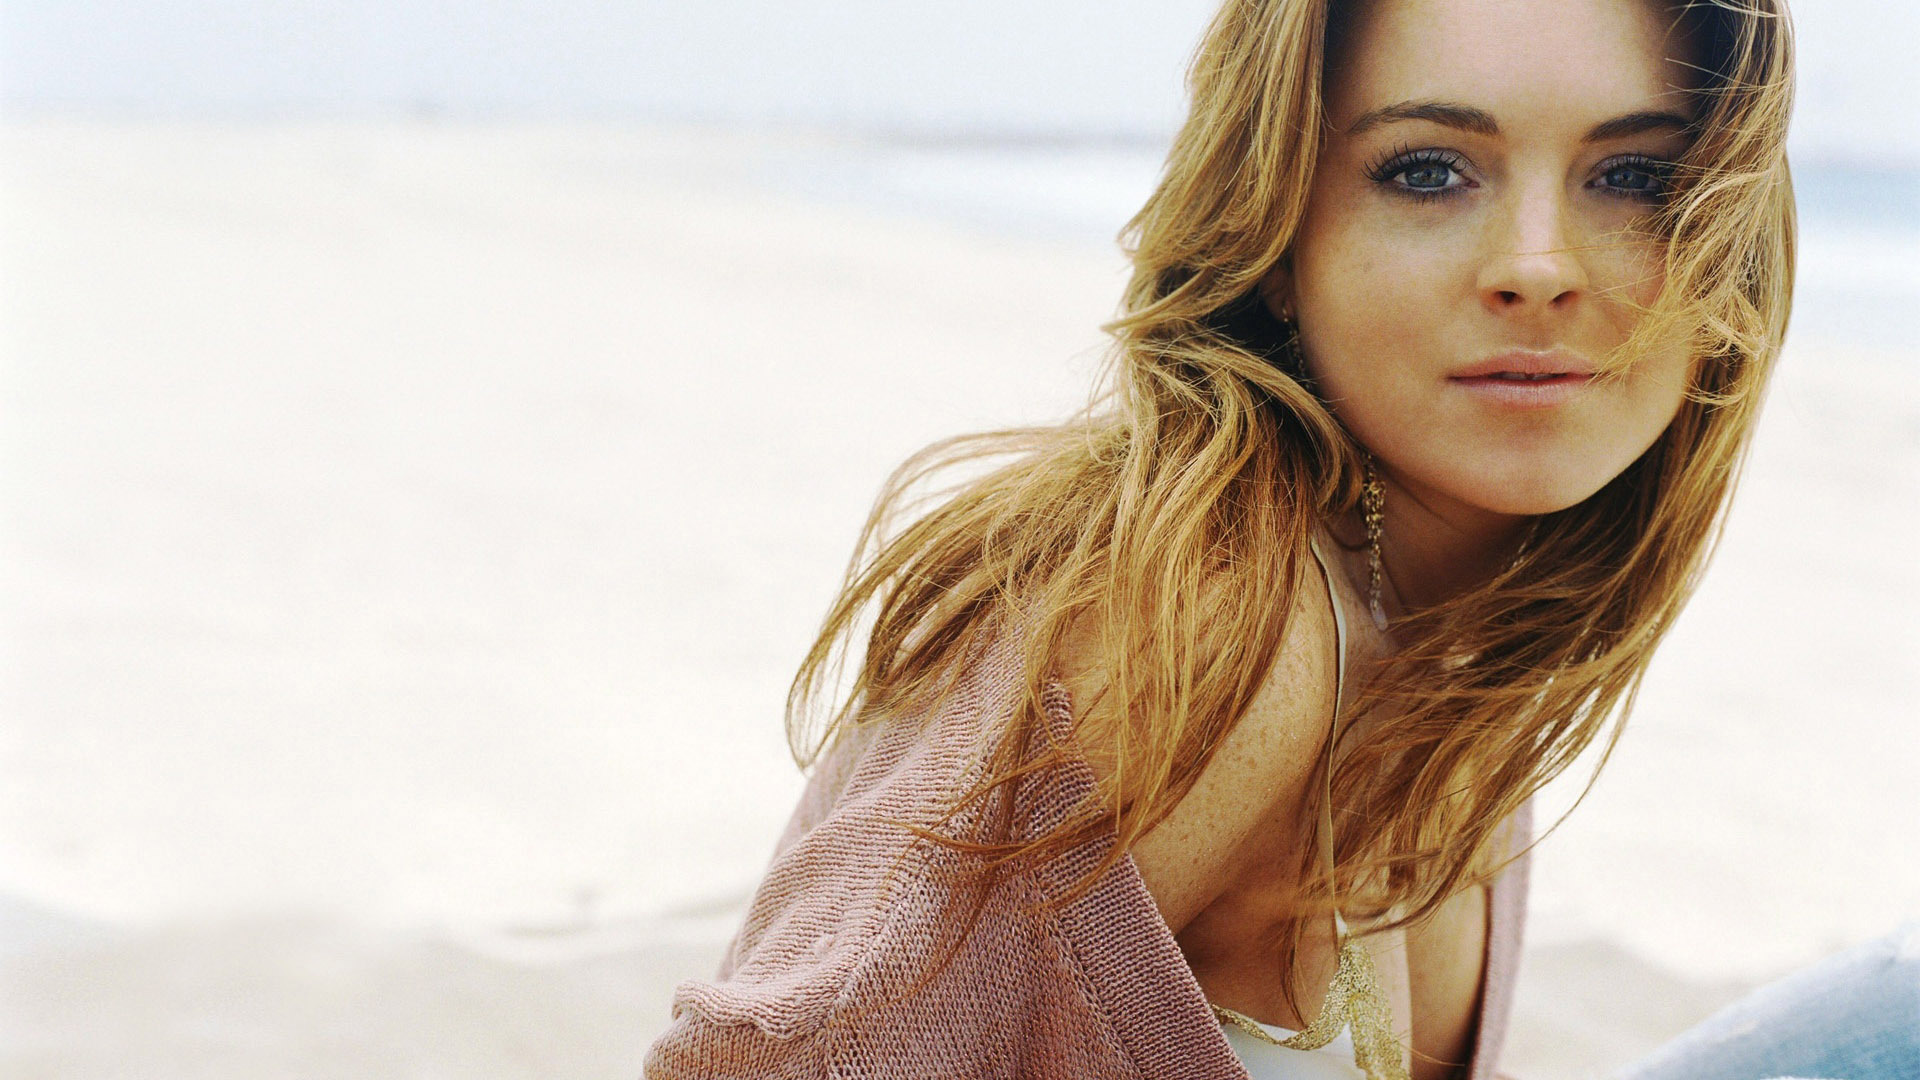 Lindsey Lohan Wallpapers And Backgrounds